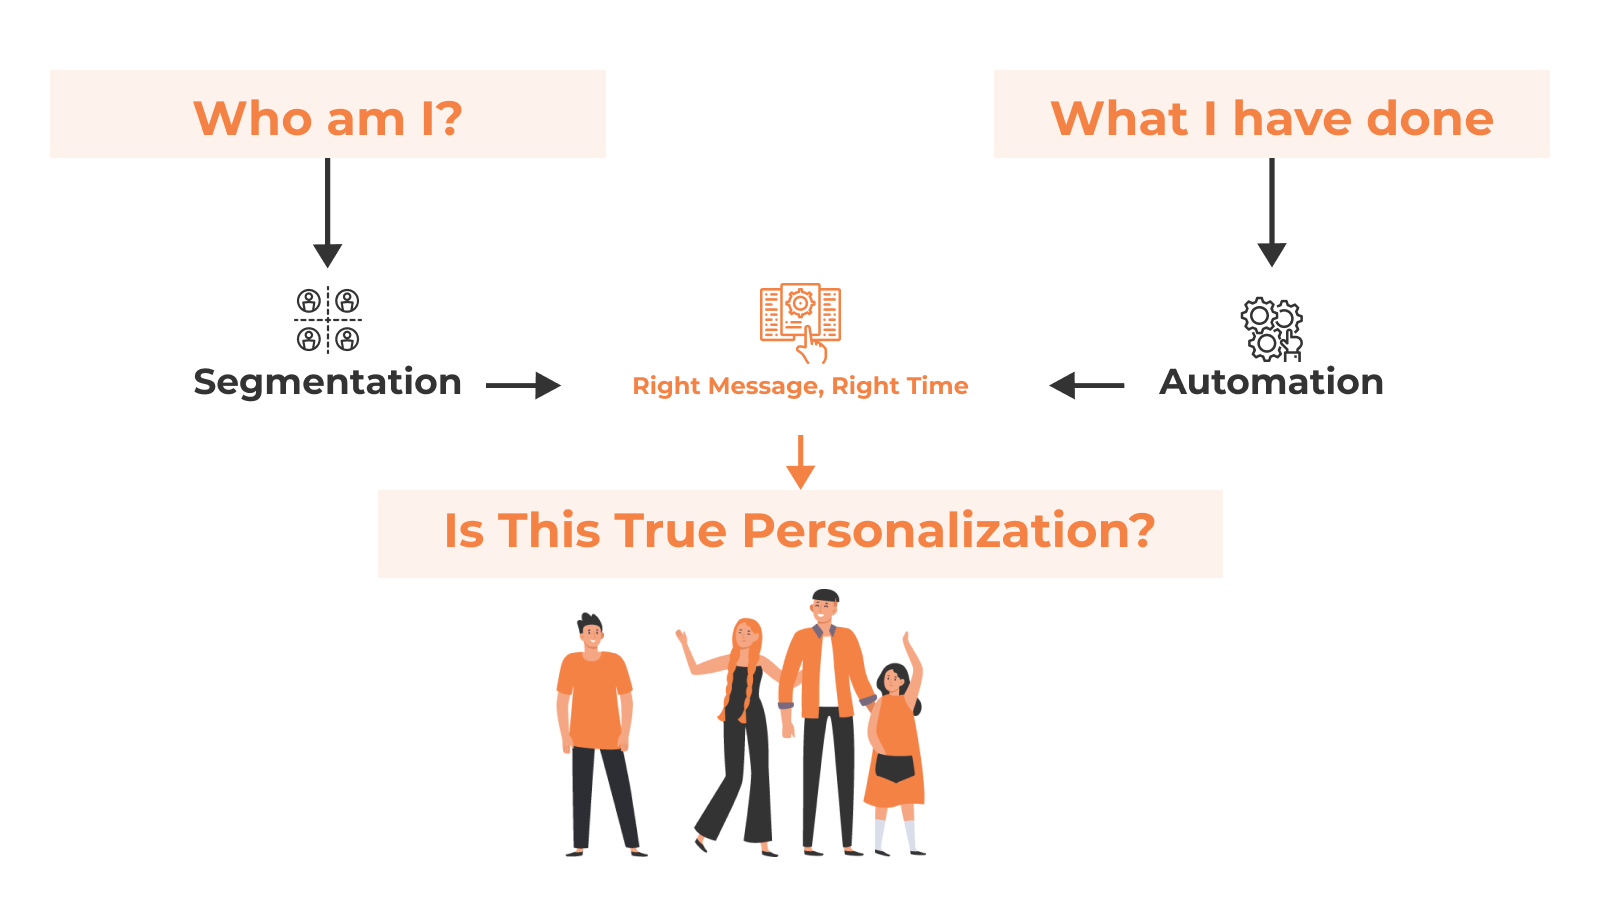 A diagram depicting the combination of segmentation and automation in personalization